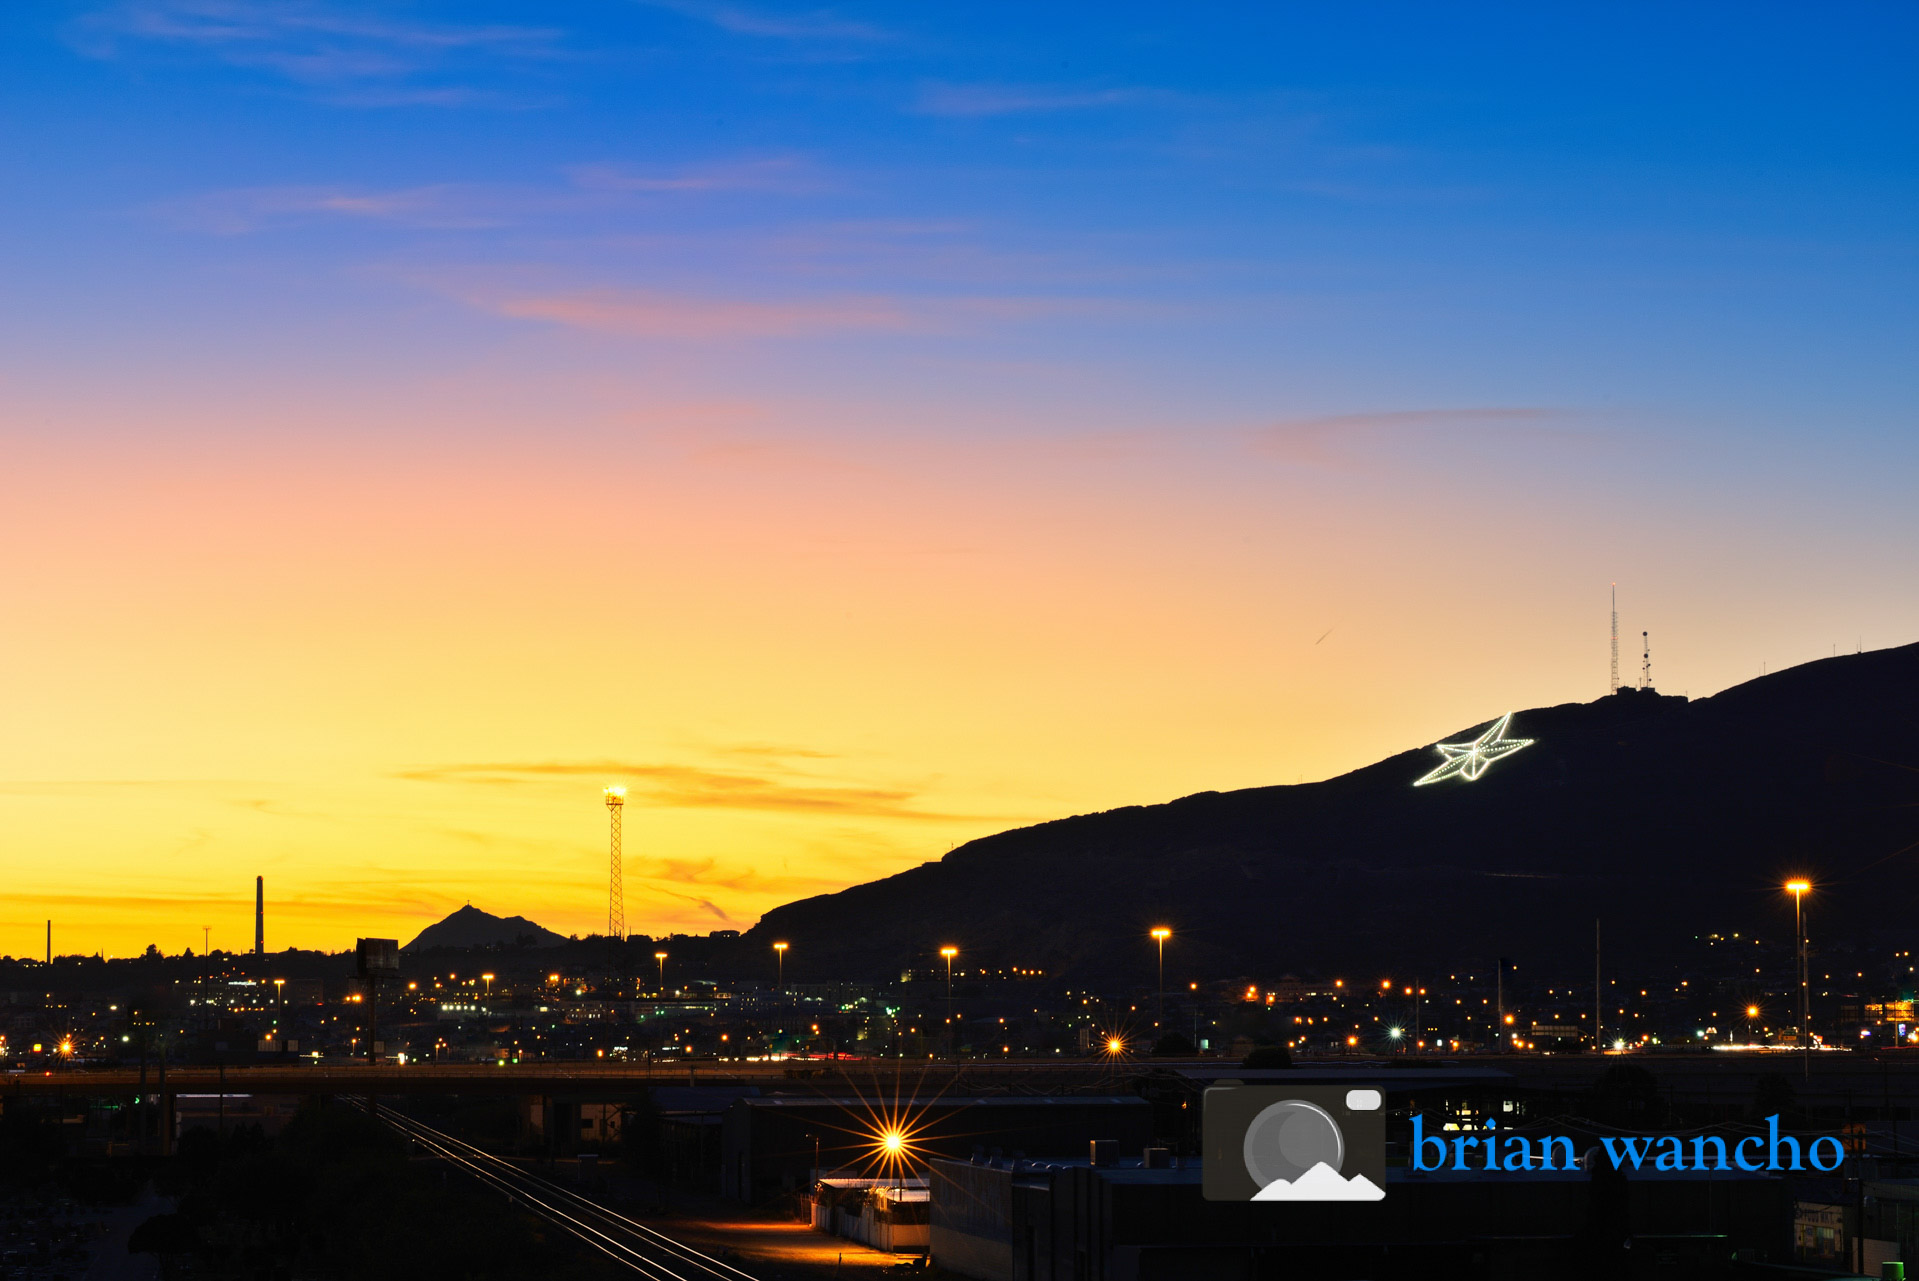 El Paso's star at sunset.